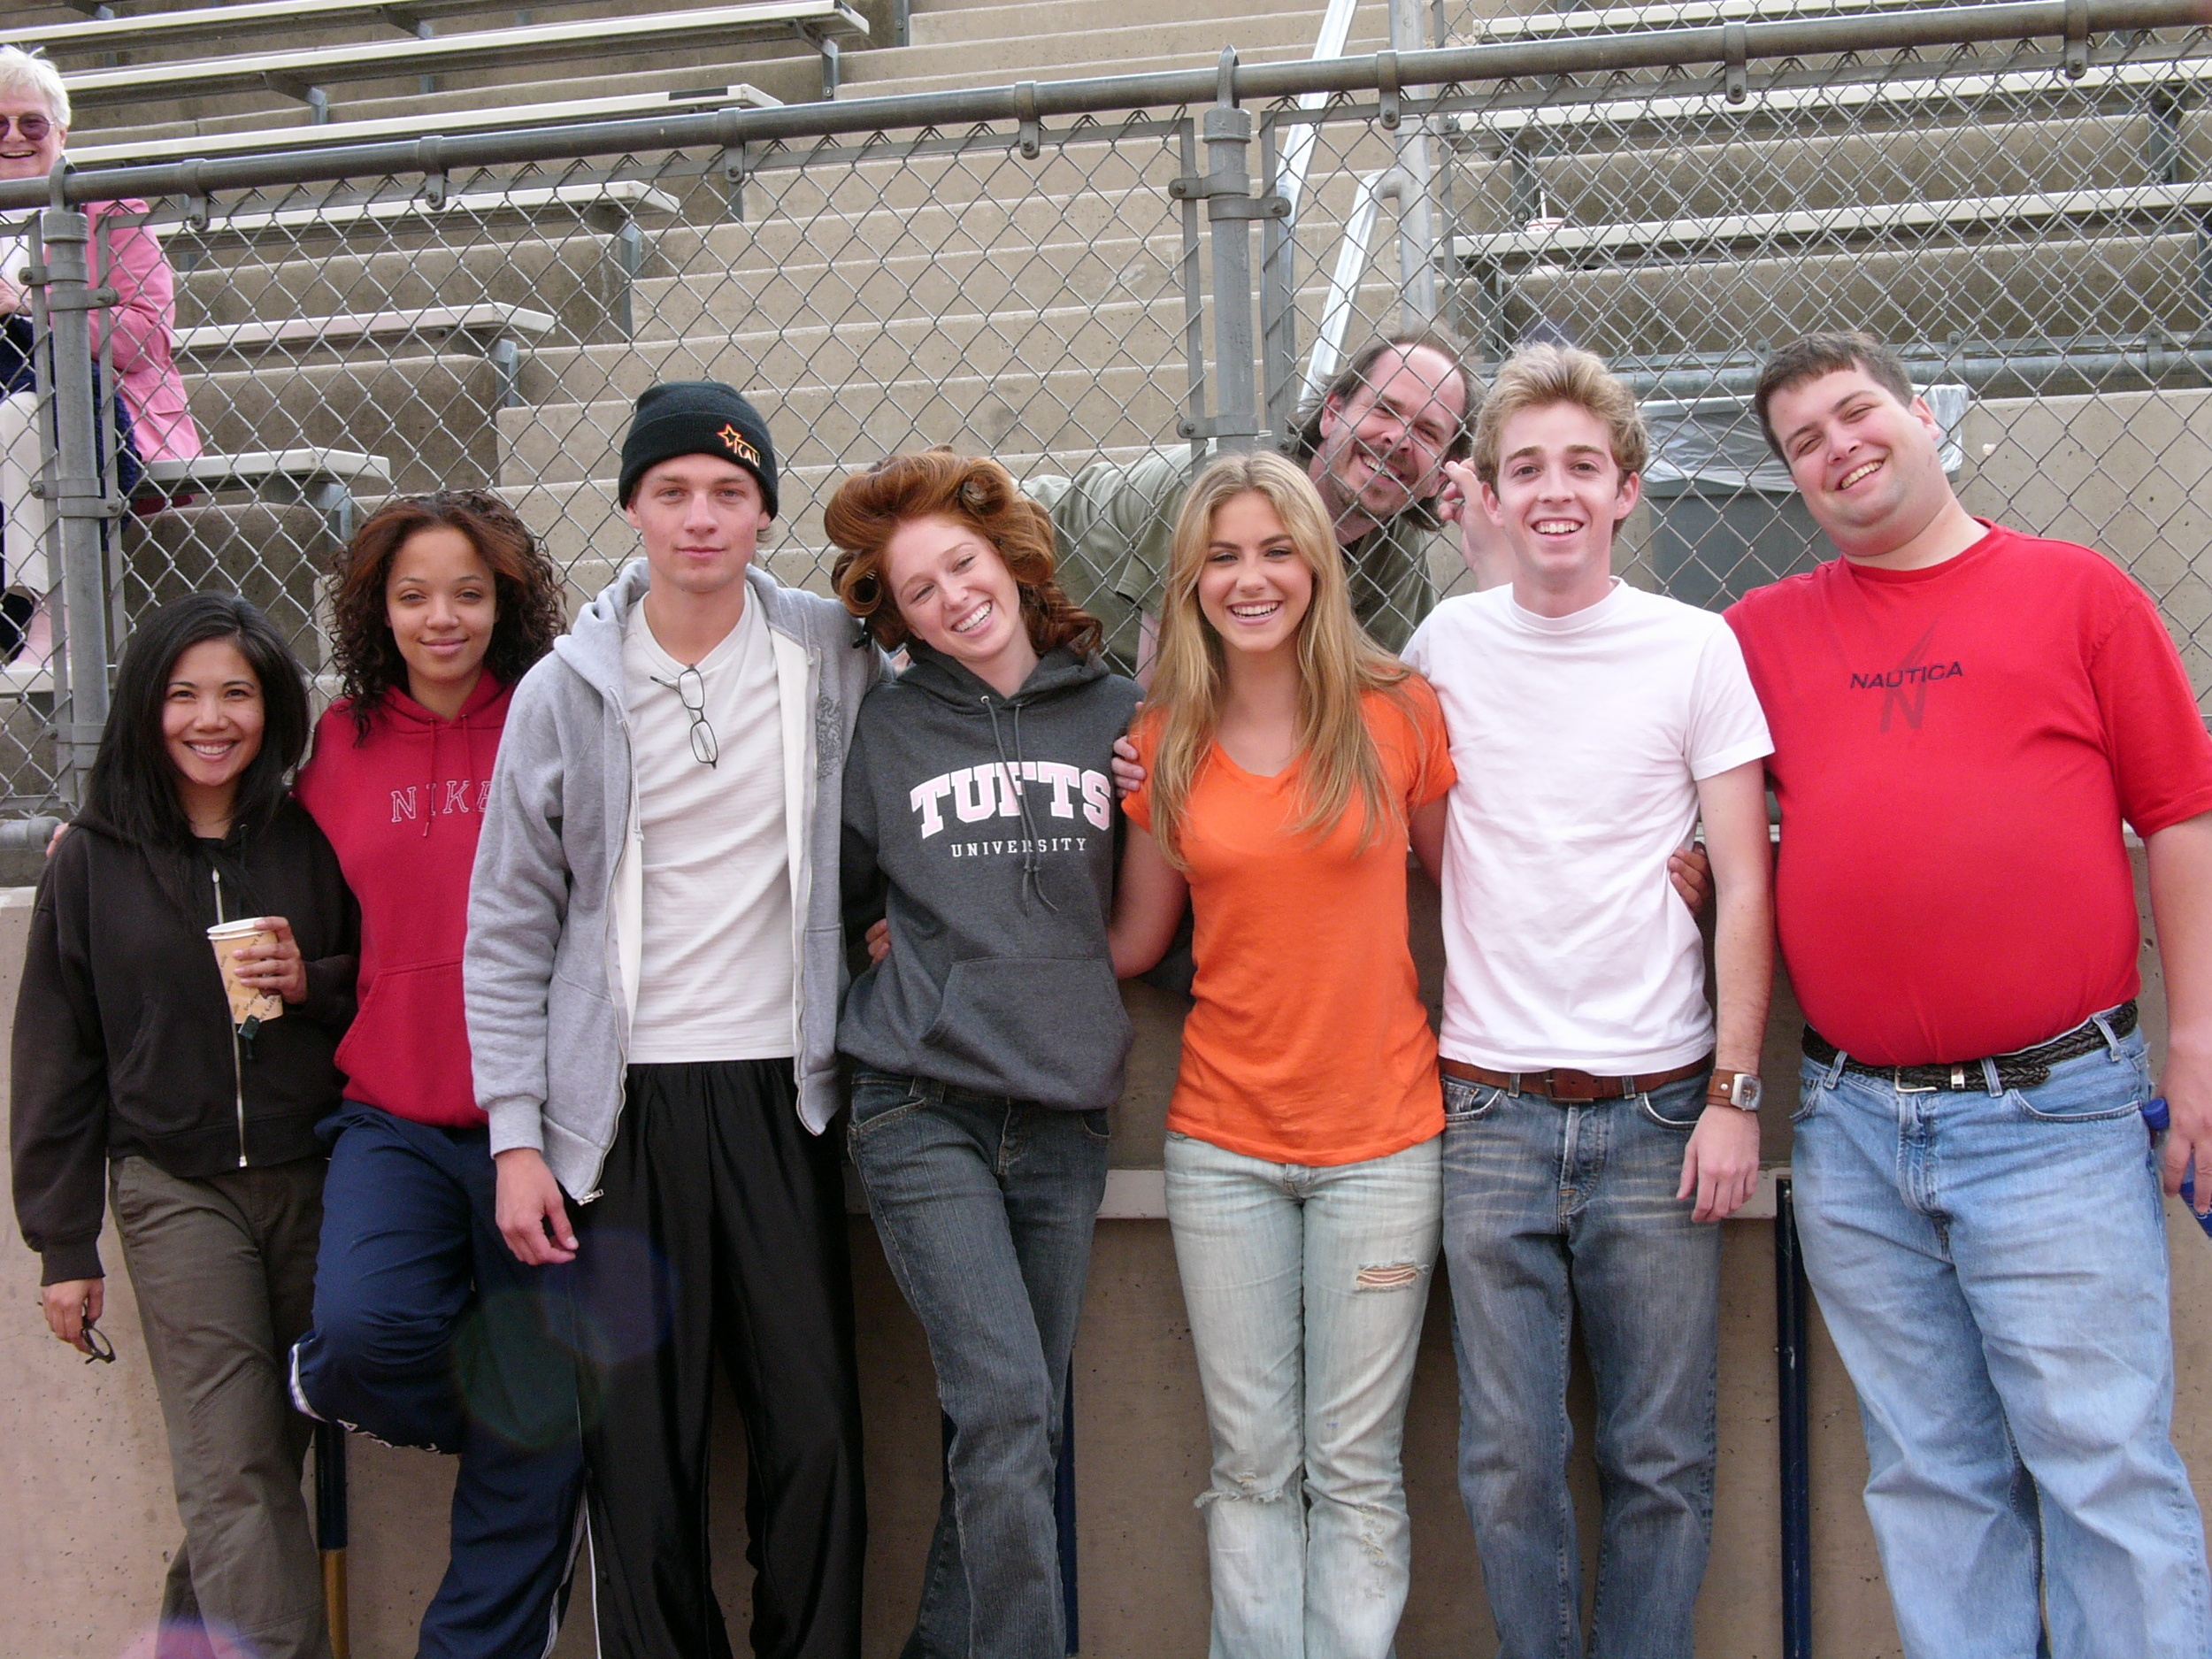 With Emy Coligado, Crystal Celeste Grant, Gregory Smith, Stephanie Sherrin, Caitlin Wachs, Alex Anfanger and Chris Morris on Kids in America